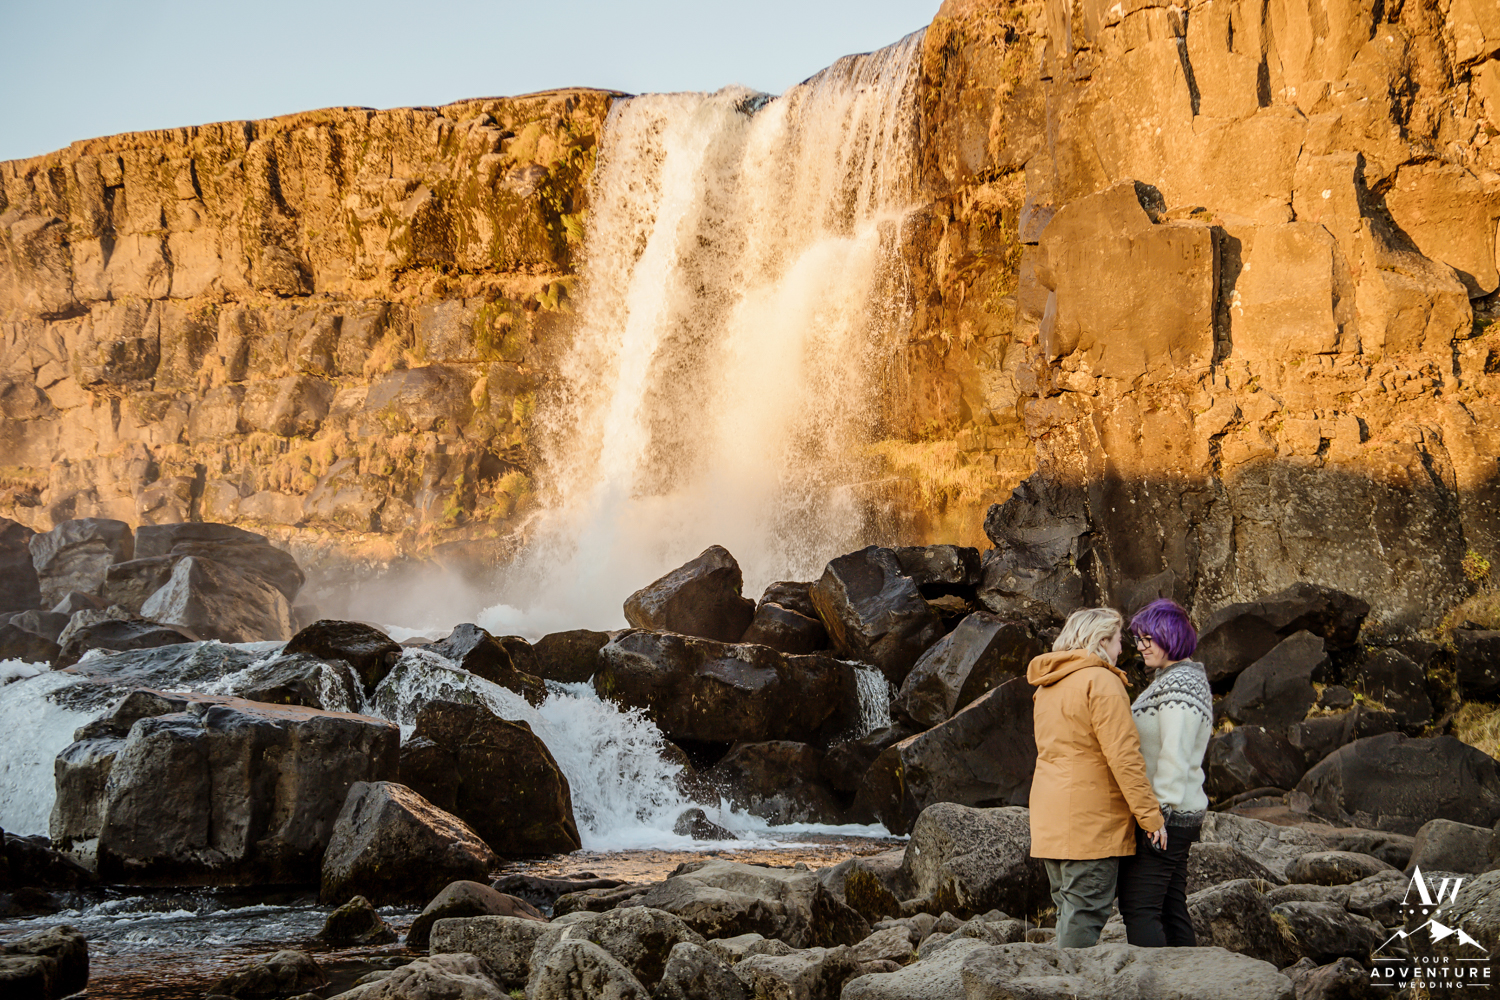 Oxararfoss Waterfall Proposal Iceland LGBT Proposal Two Girls